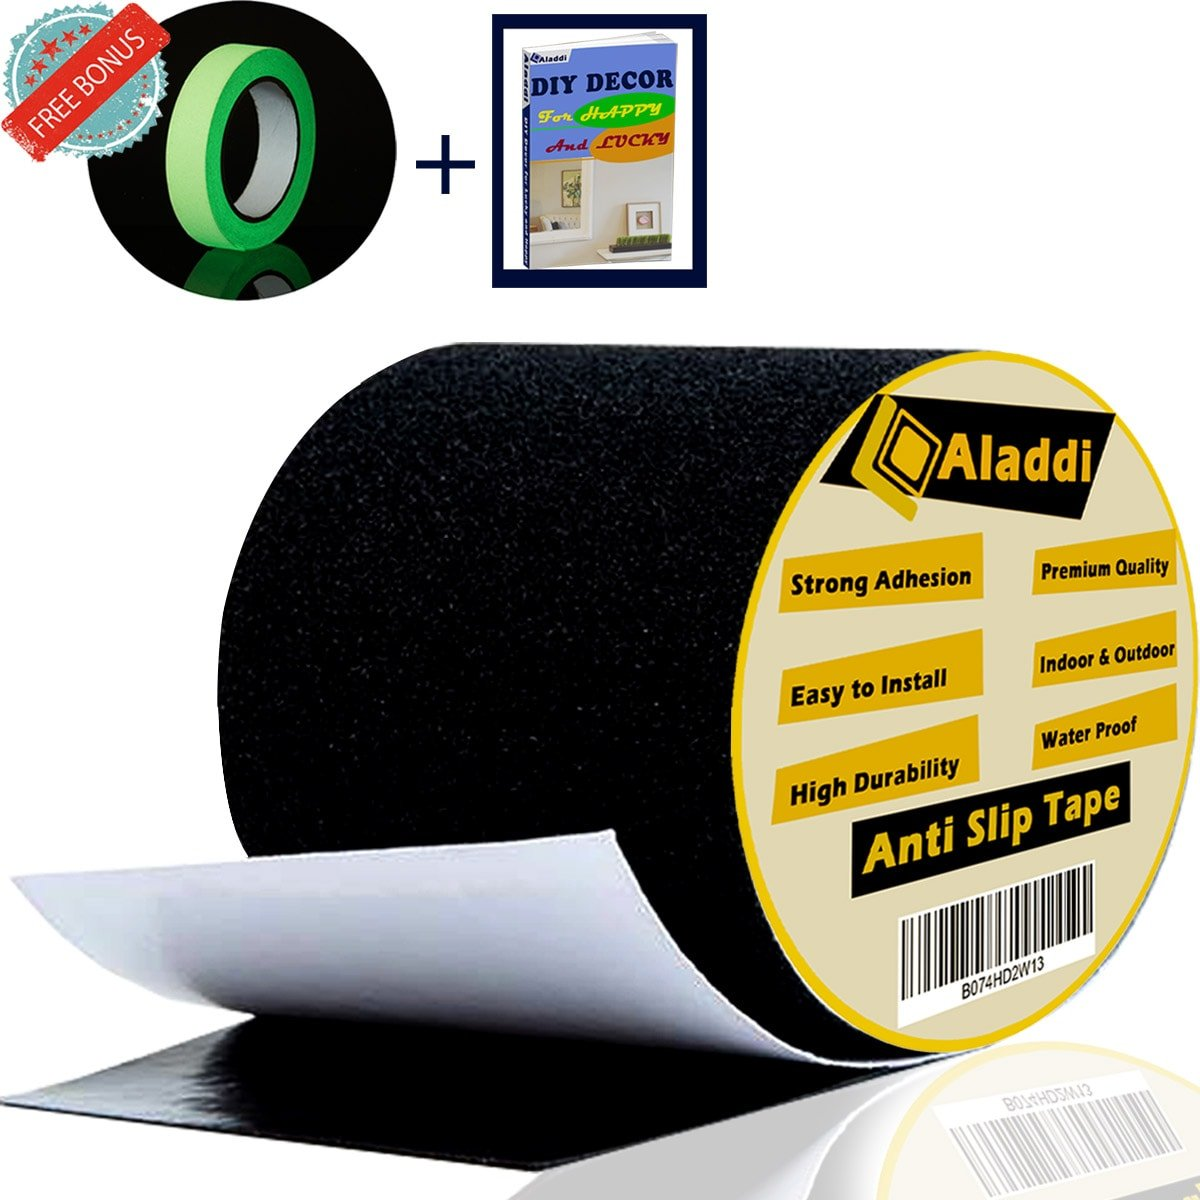 [FLASH SALE] Anti Slip Tape - Bonus Glow In The Dark Tape + eBOOK| Best Anti Skid Safety Tape for Indoor and Outdoor Tread High Friction Strong Grip Abrasive - Improves Traction, Prevents Risk 4''X16'